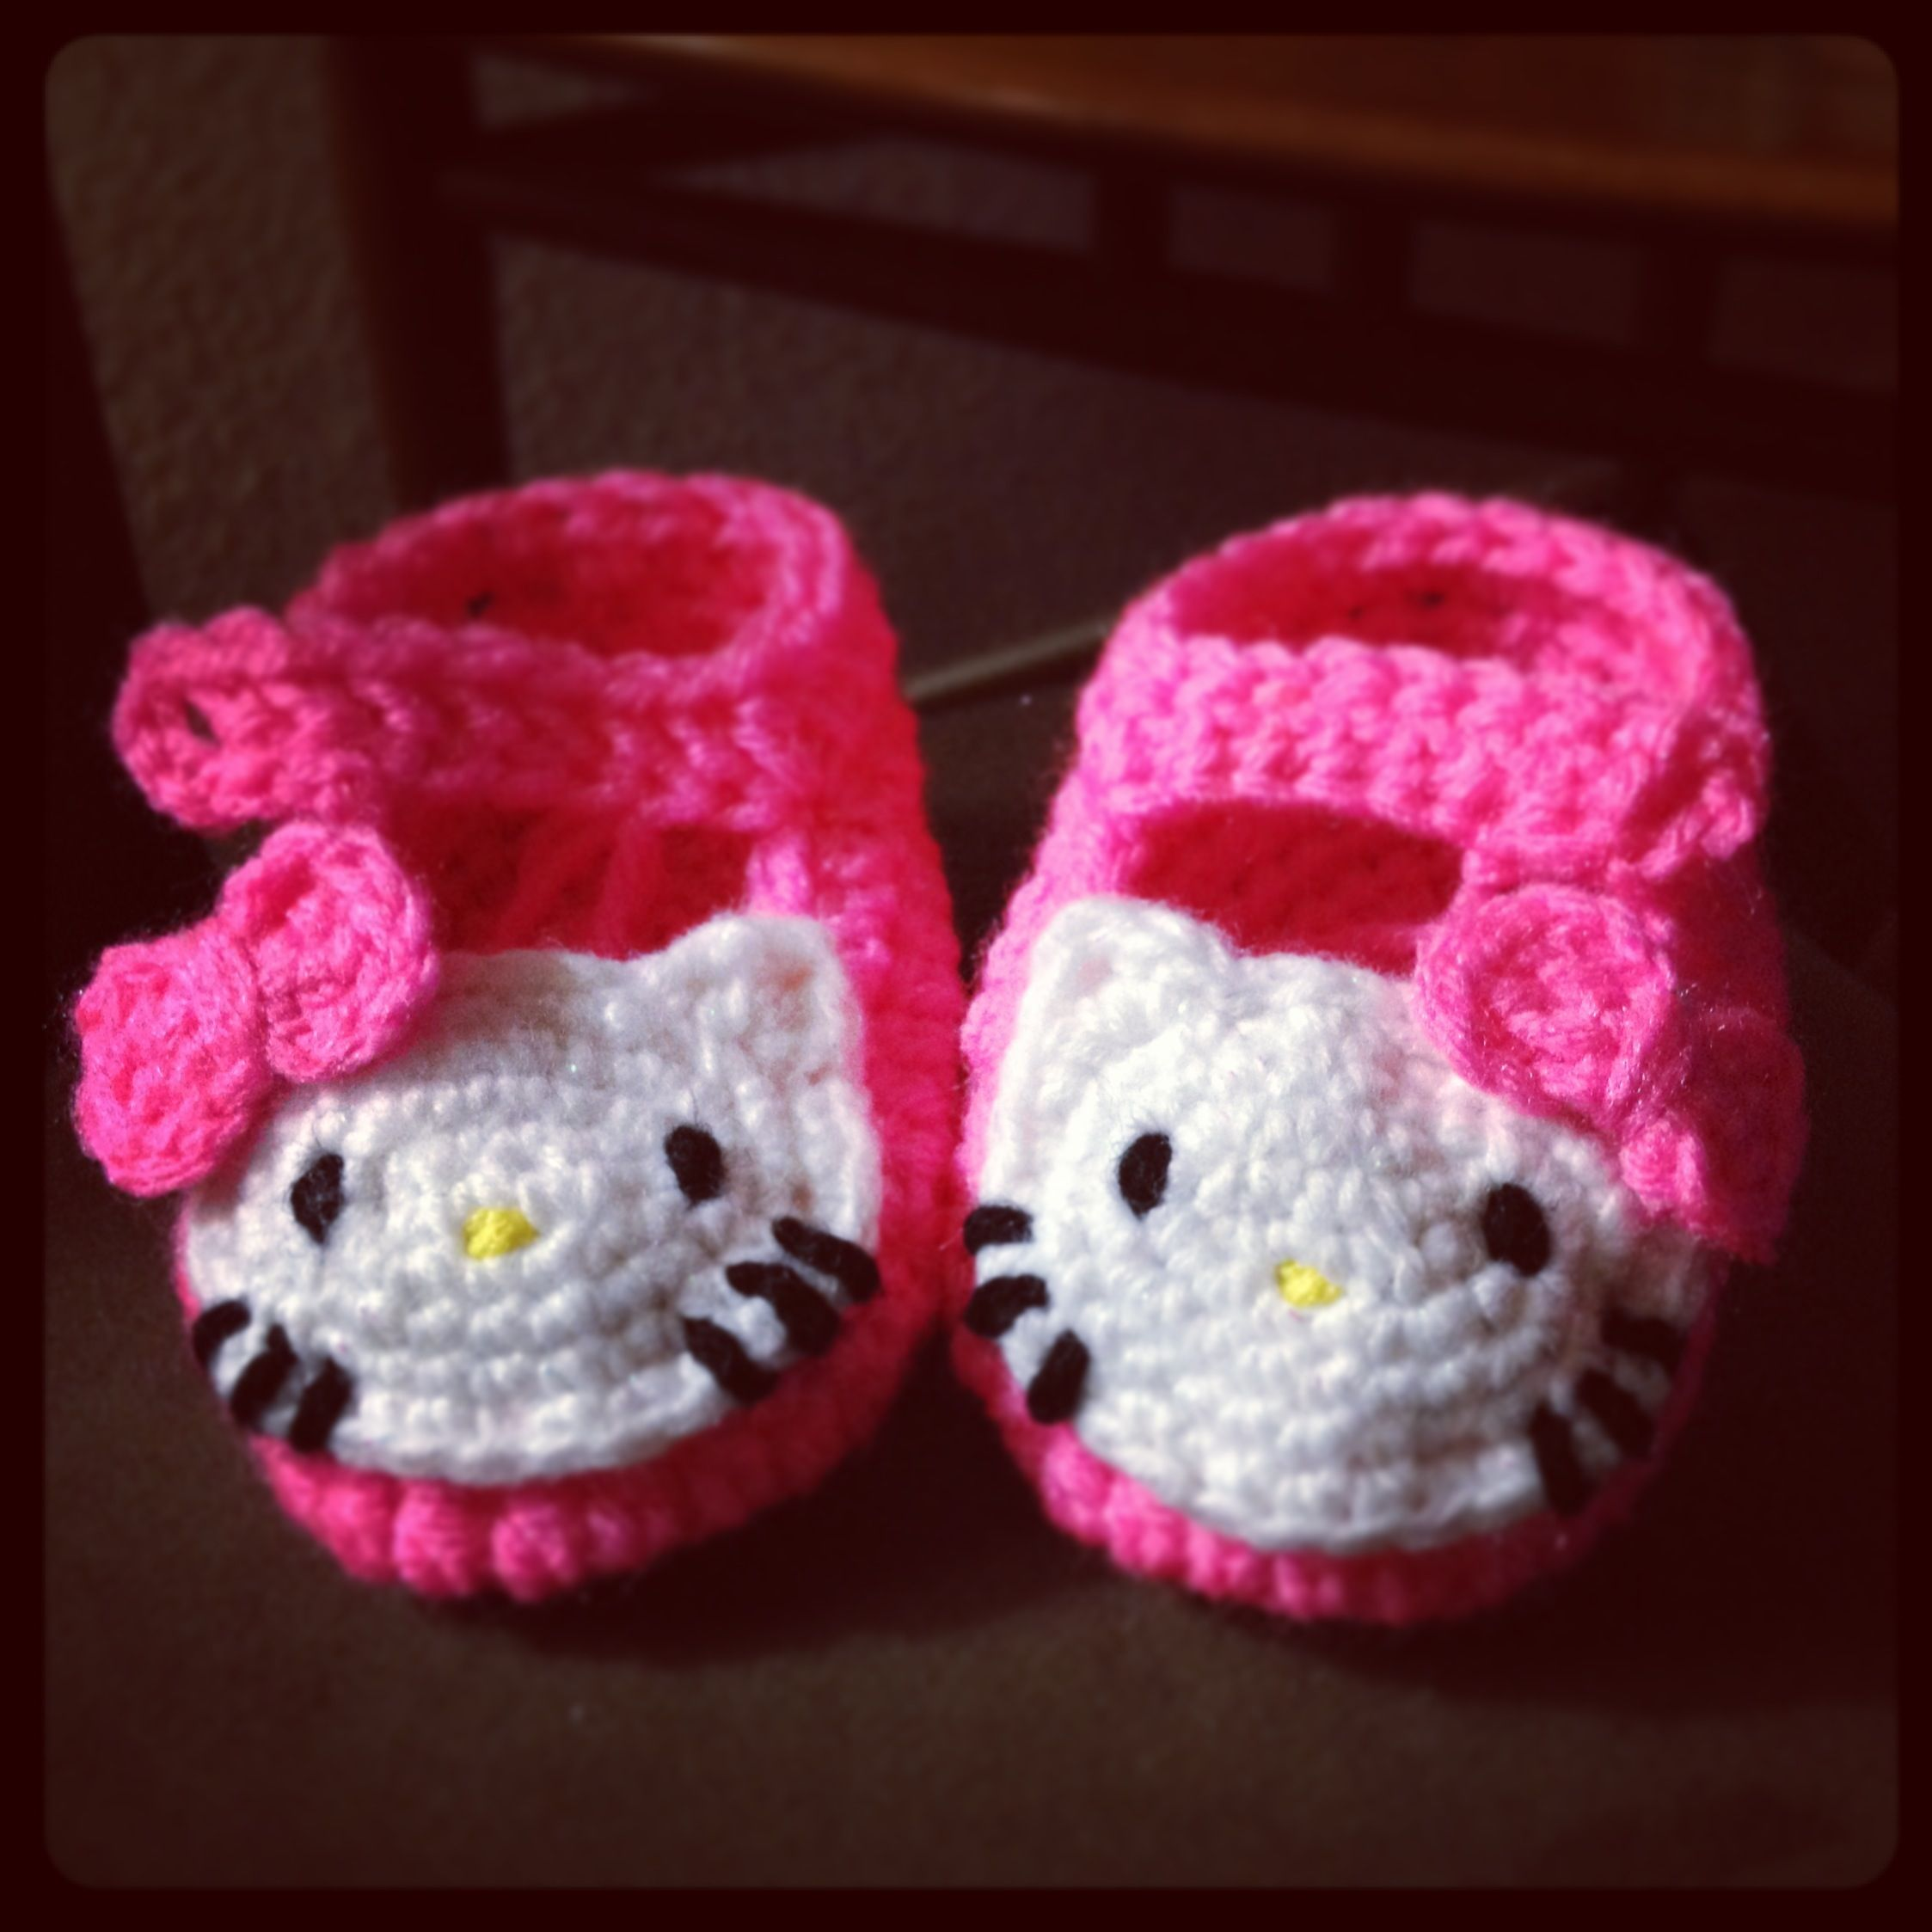 Crochet Patterns For Hello Kitty : Crocheted hello kitty baby booties Baby Shoes Pinterest